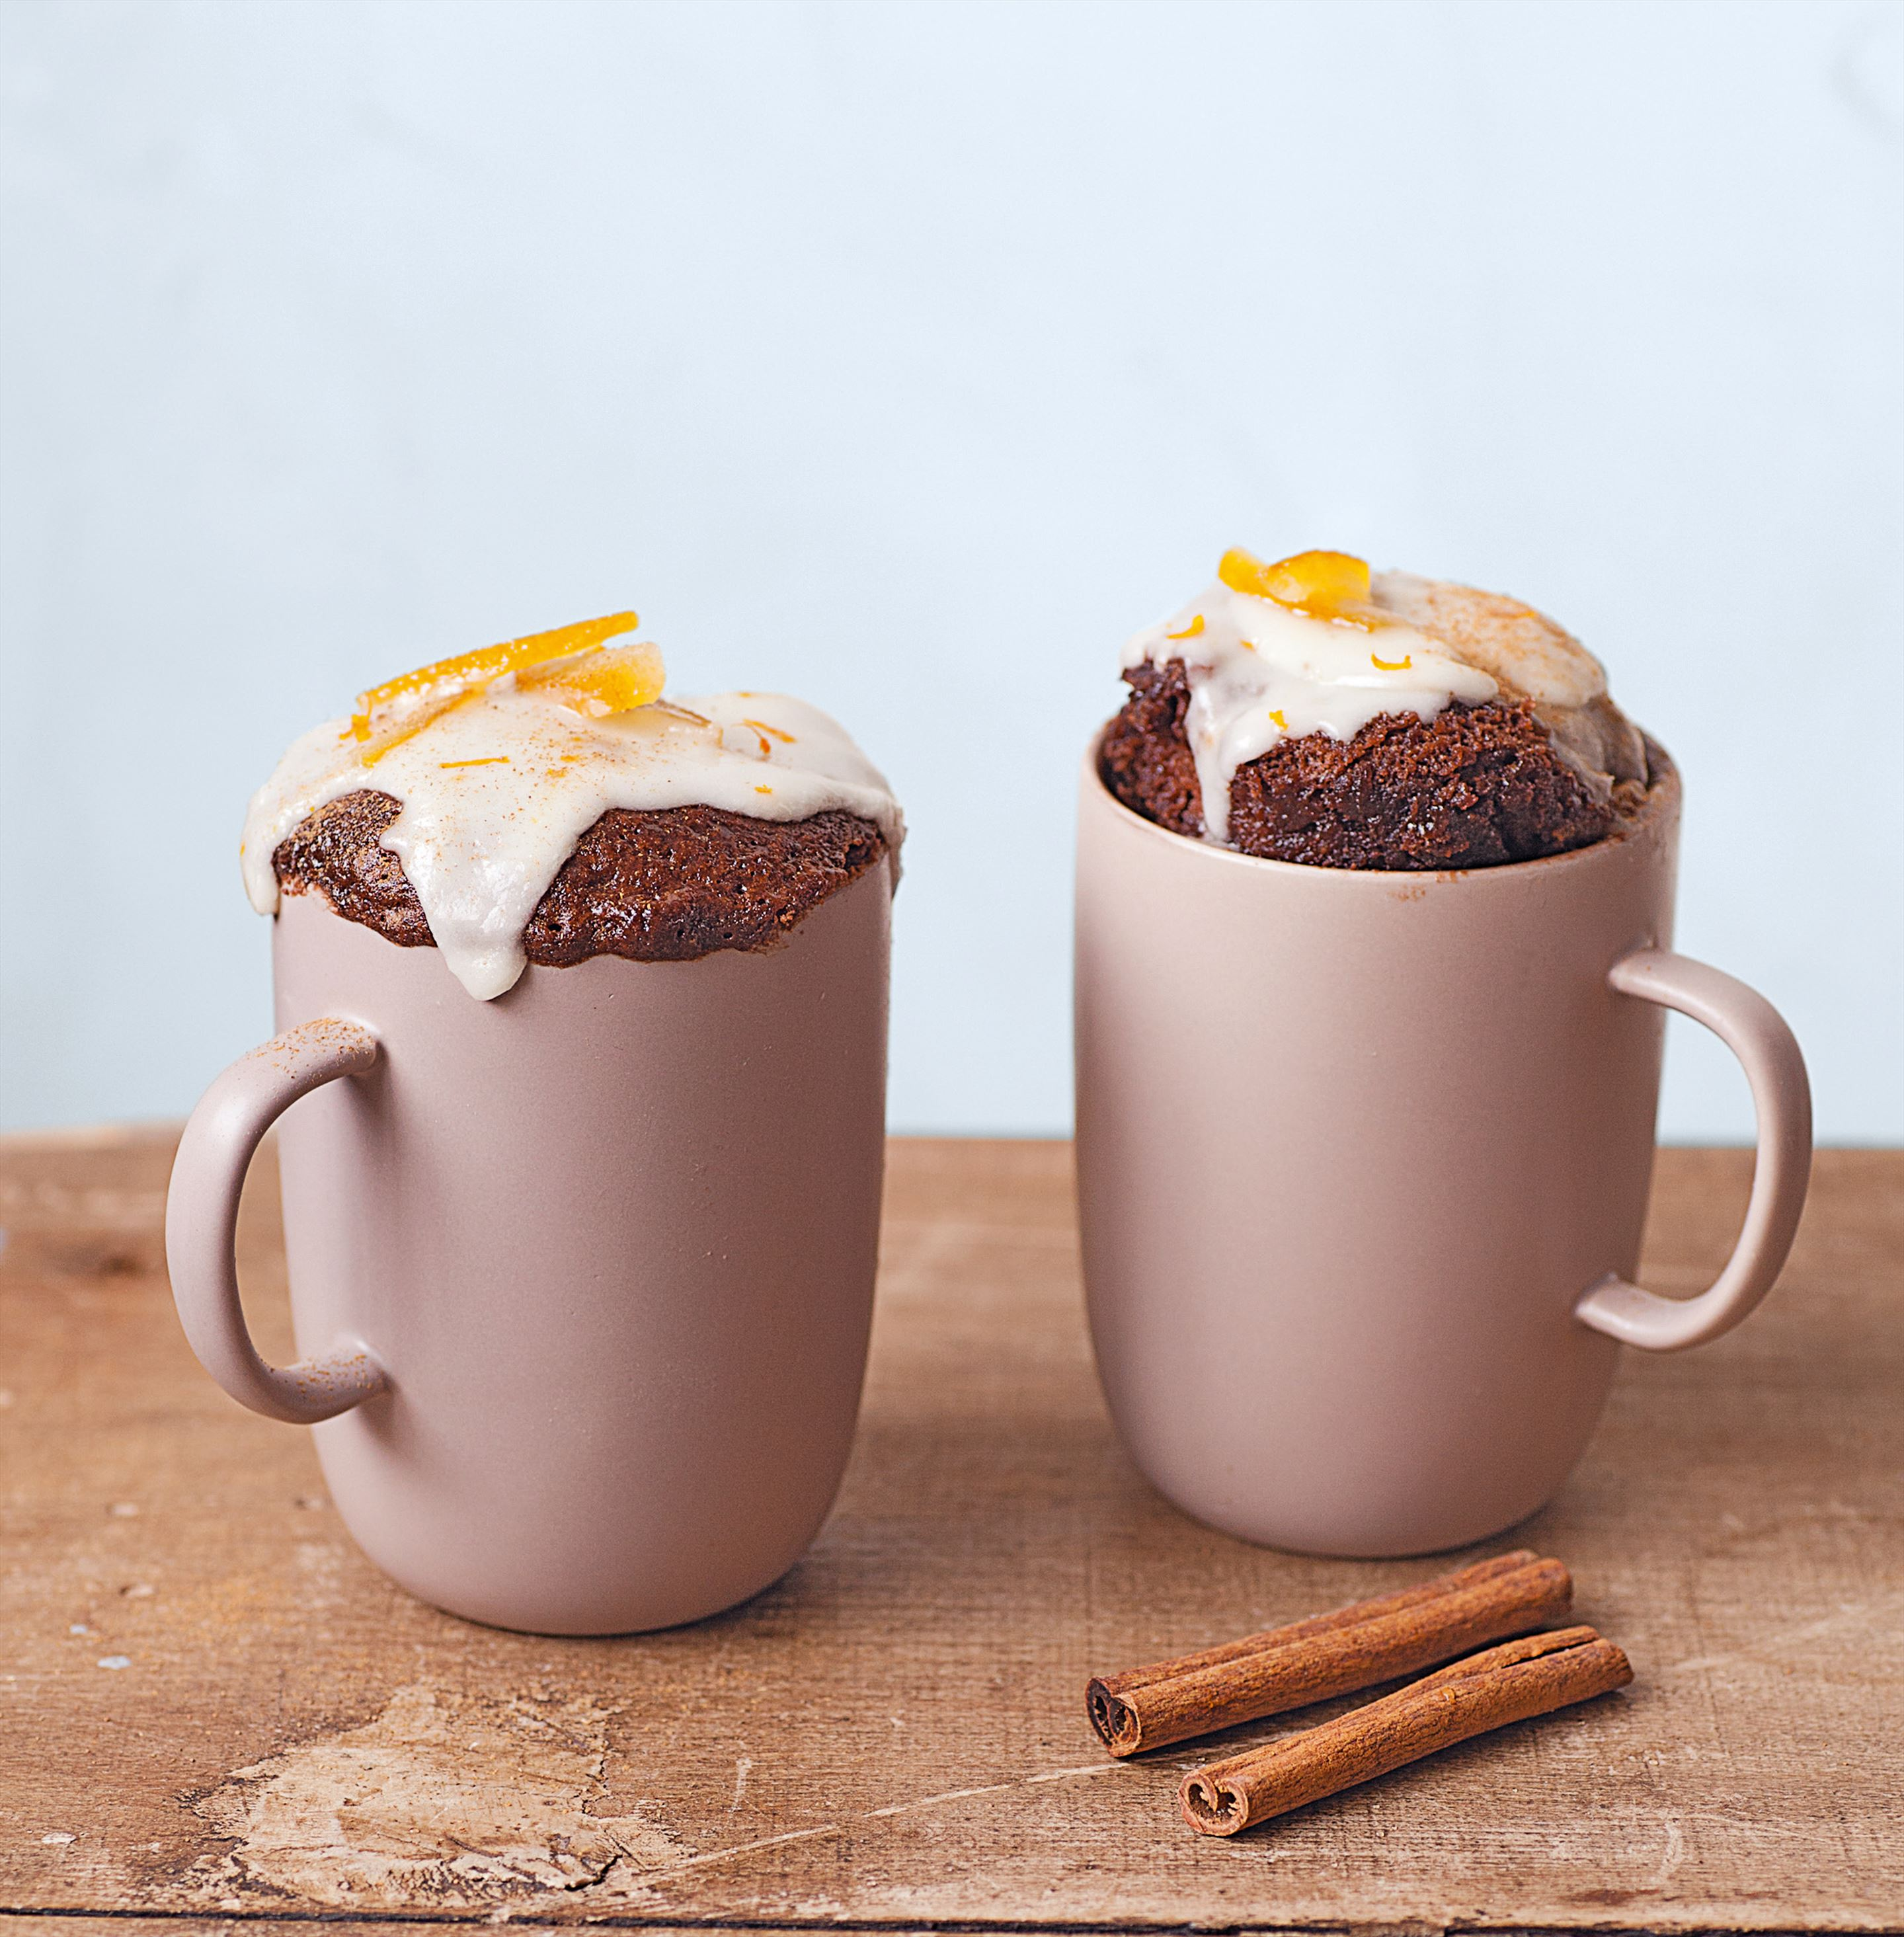 Chocolate-orange mug cake with cinnamon & icing